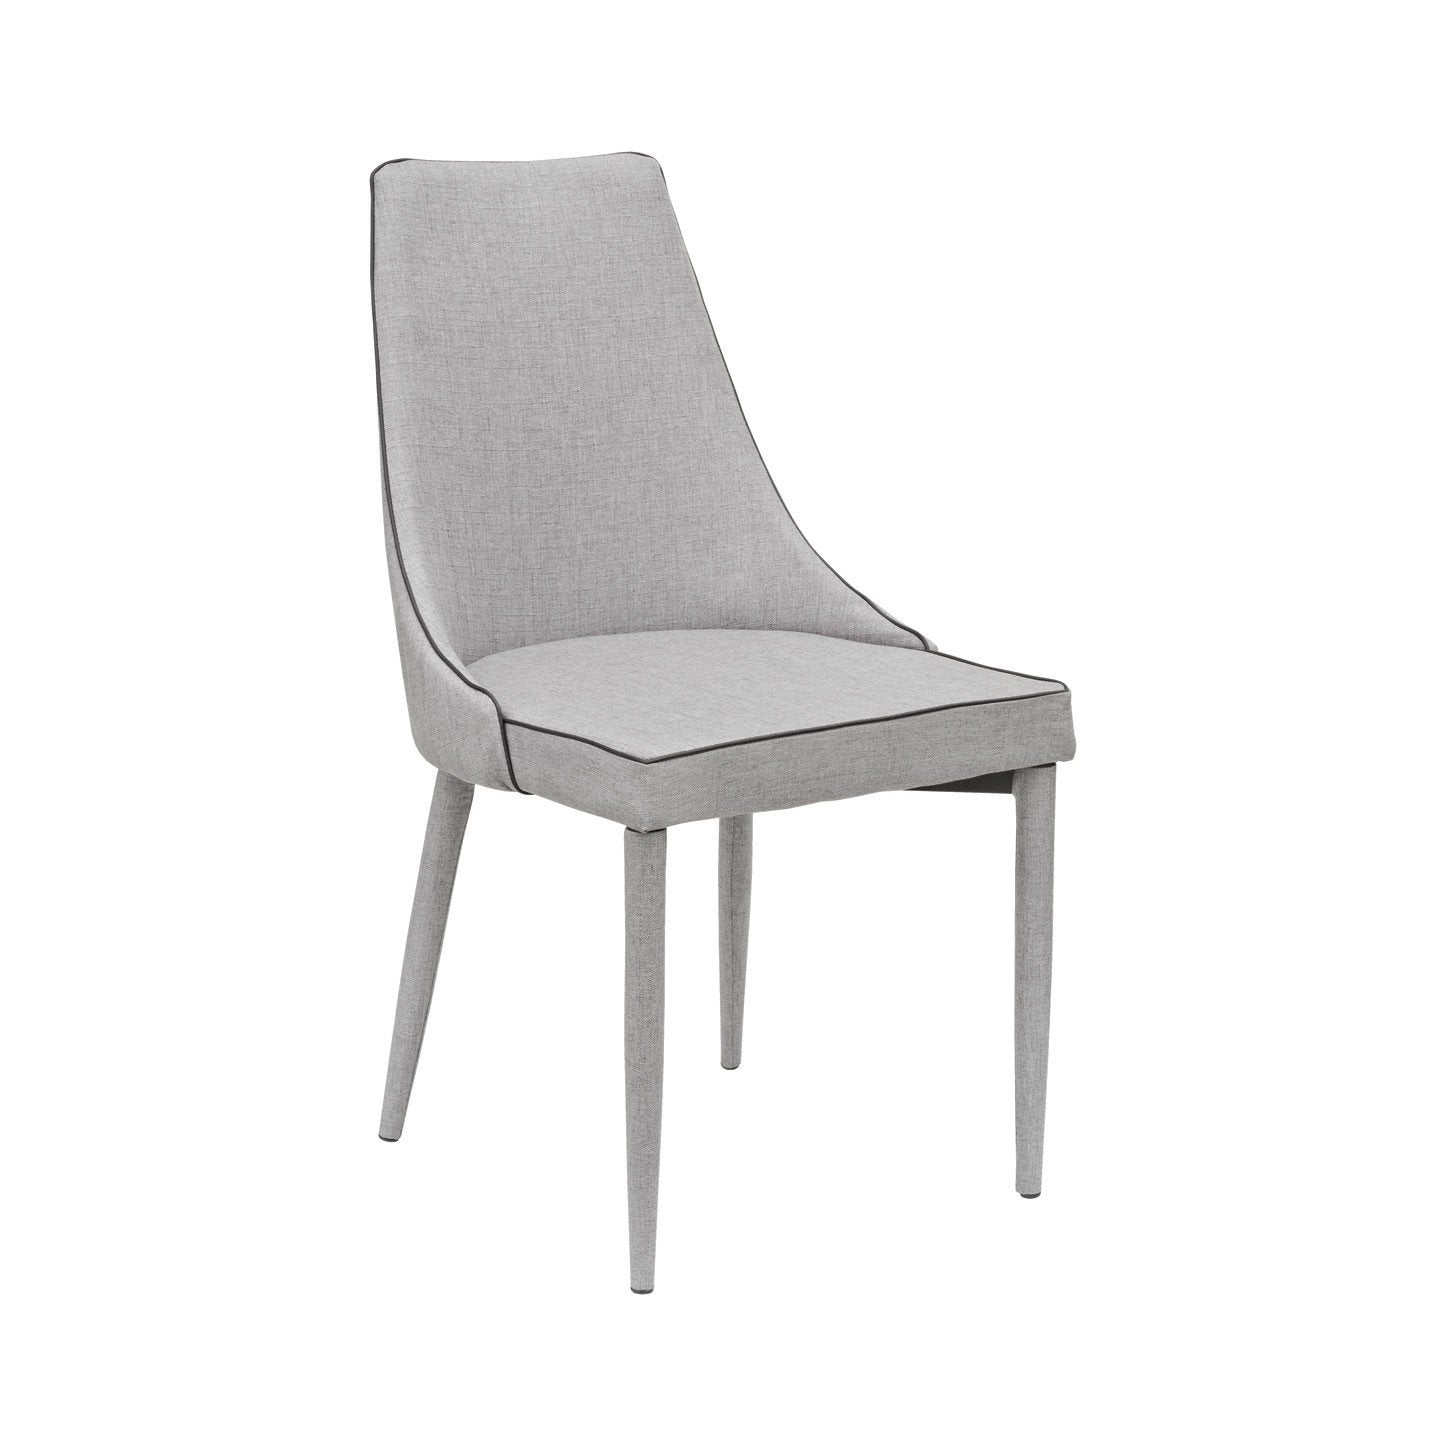 Light Grey Dining Chair – Glam Home Store